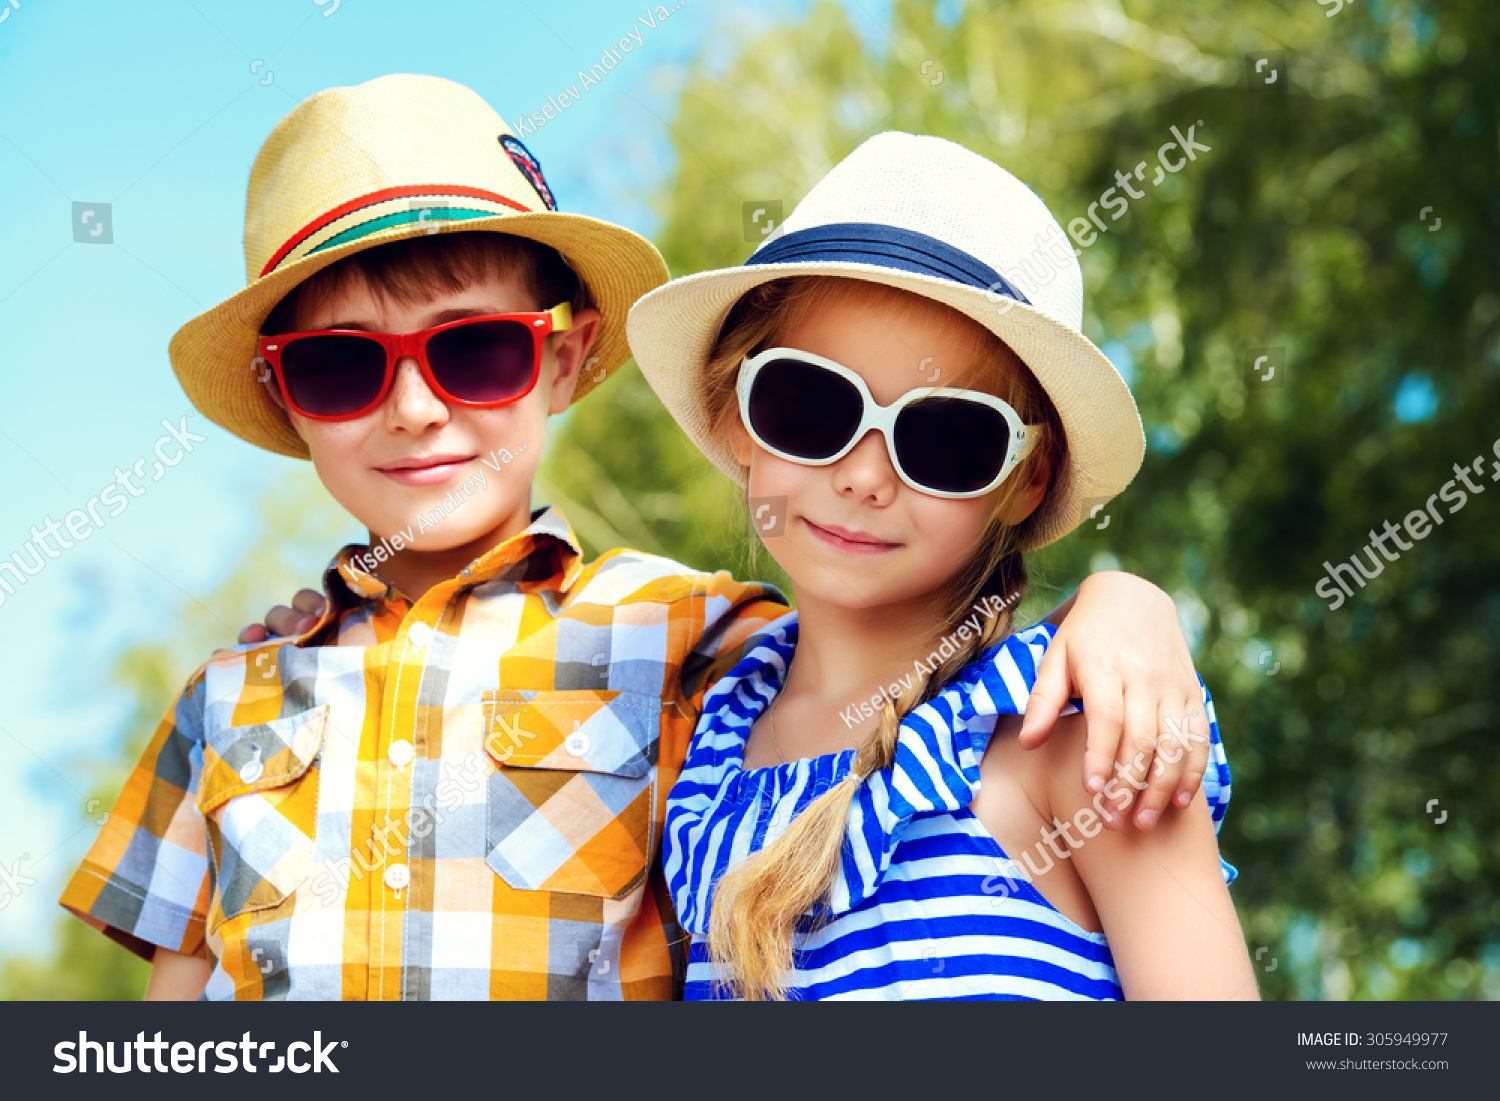 Image result for kids sun glass and hat day